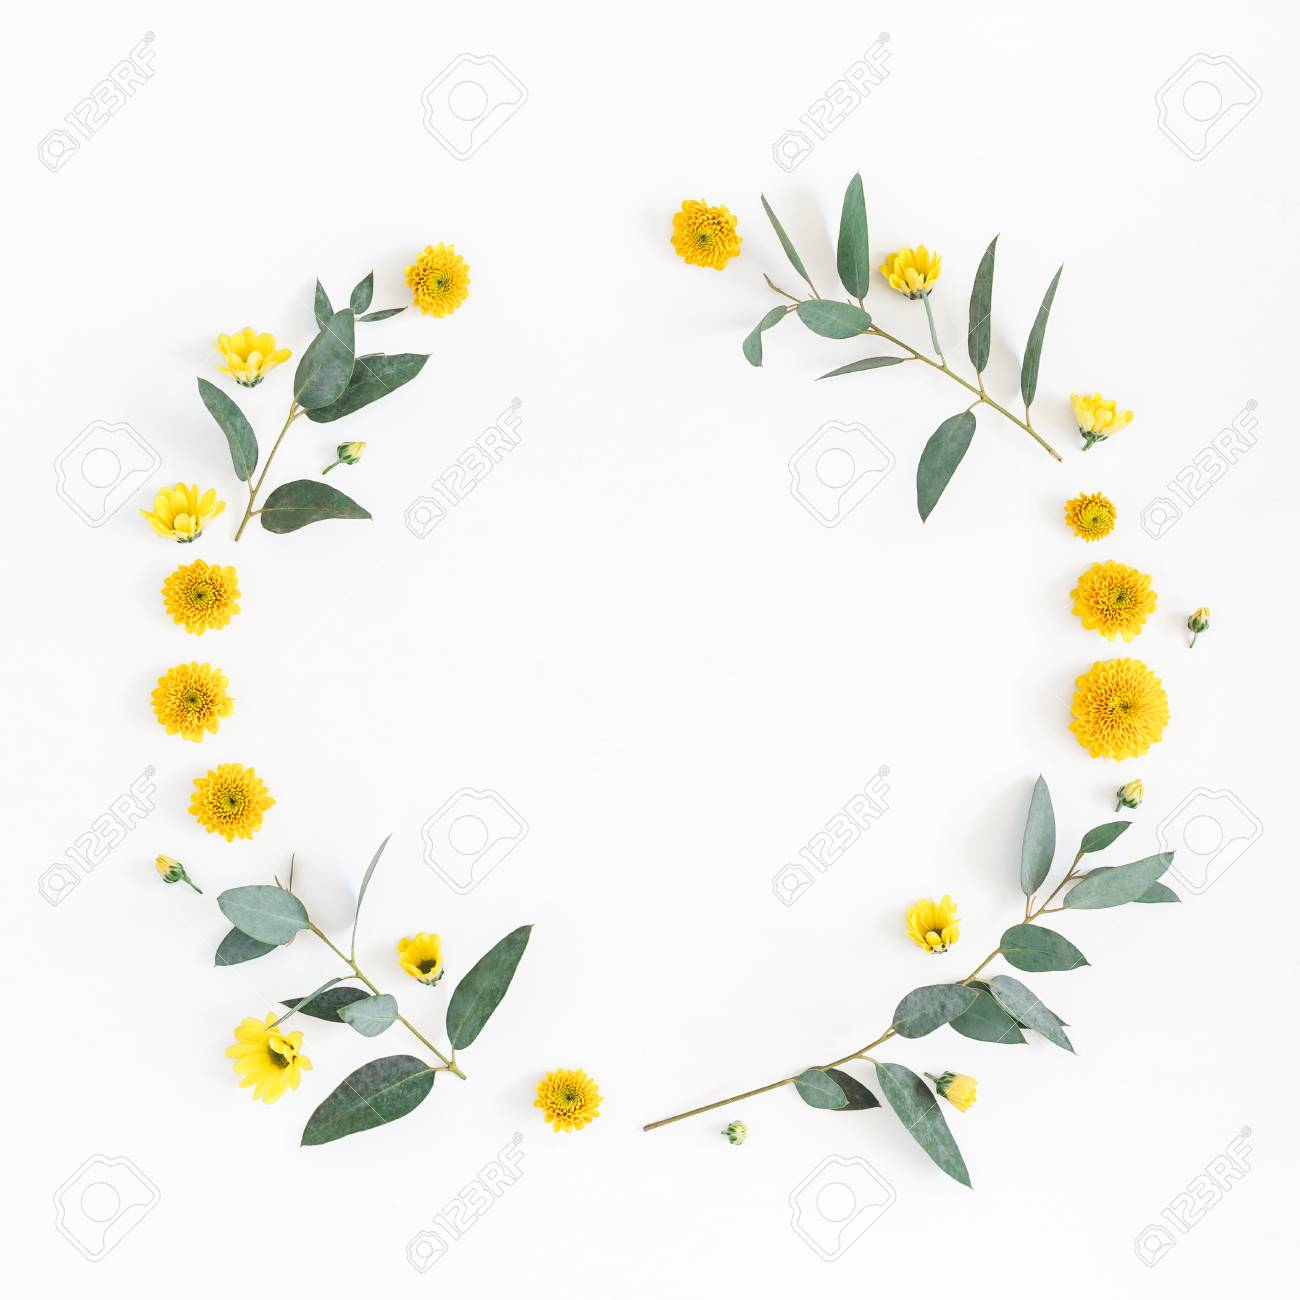 Flowers Composition Wreath Made Of Various Yellow Flowers And